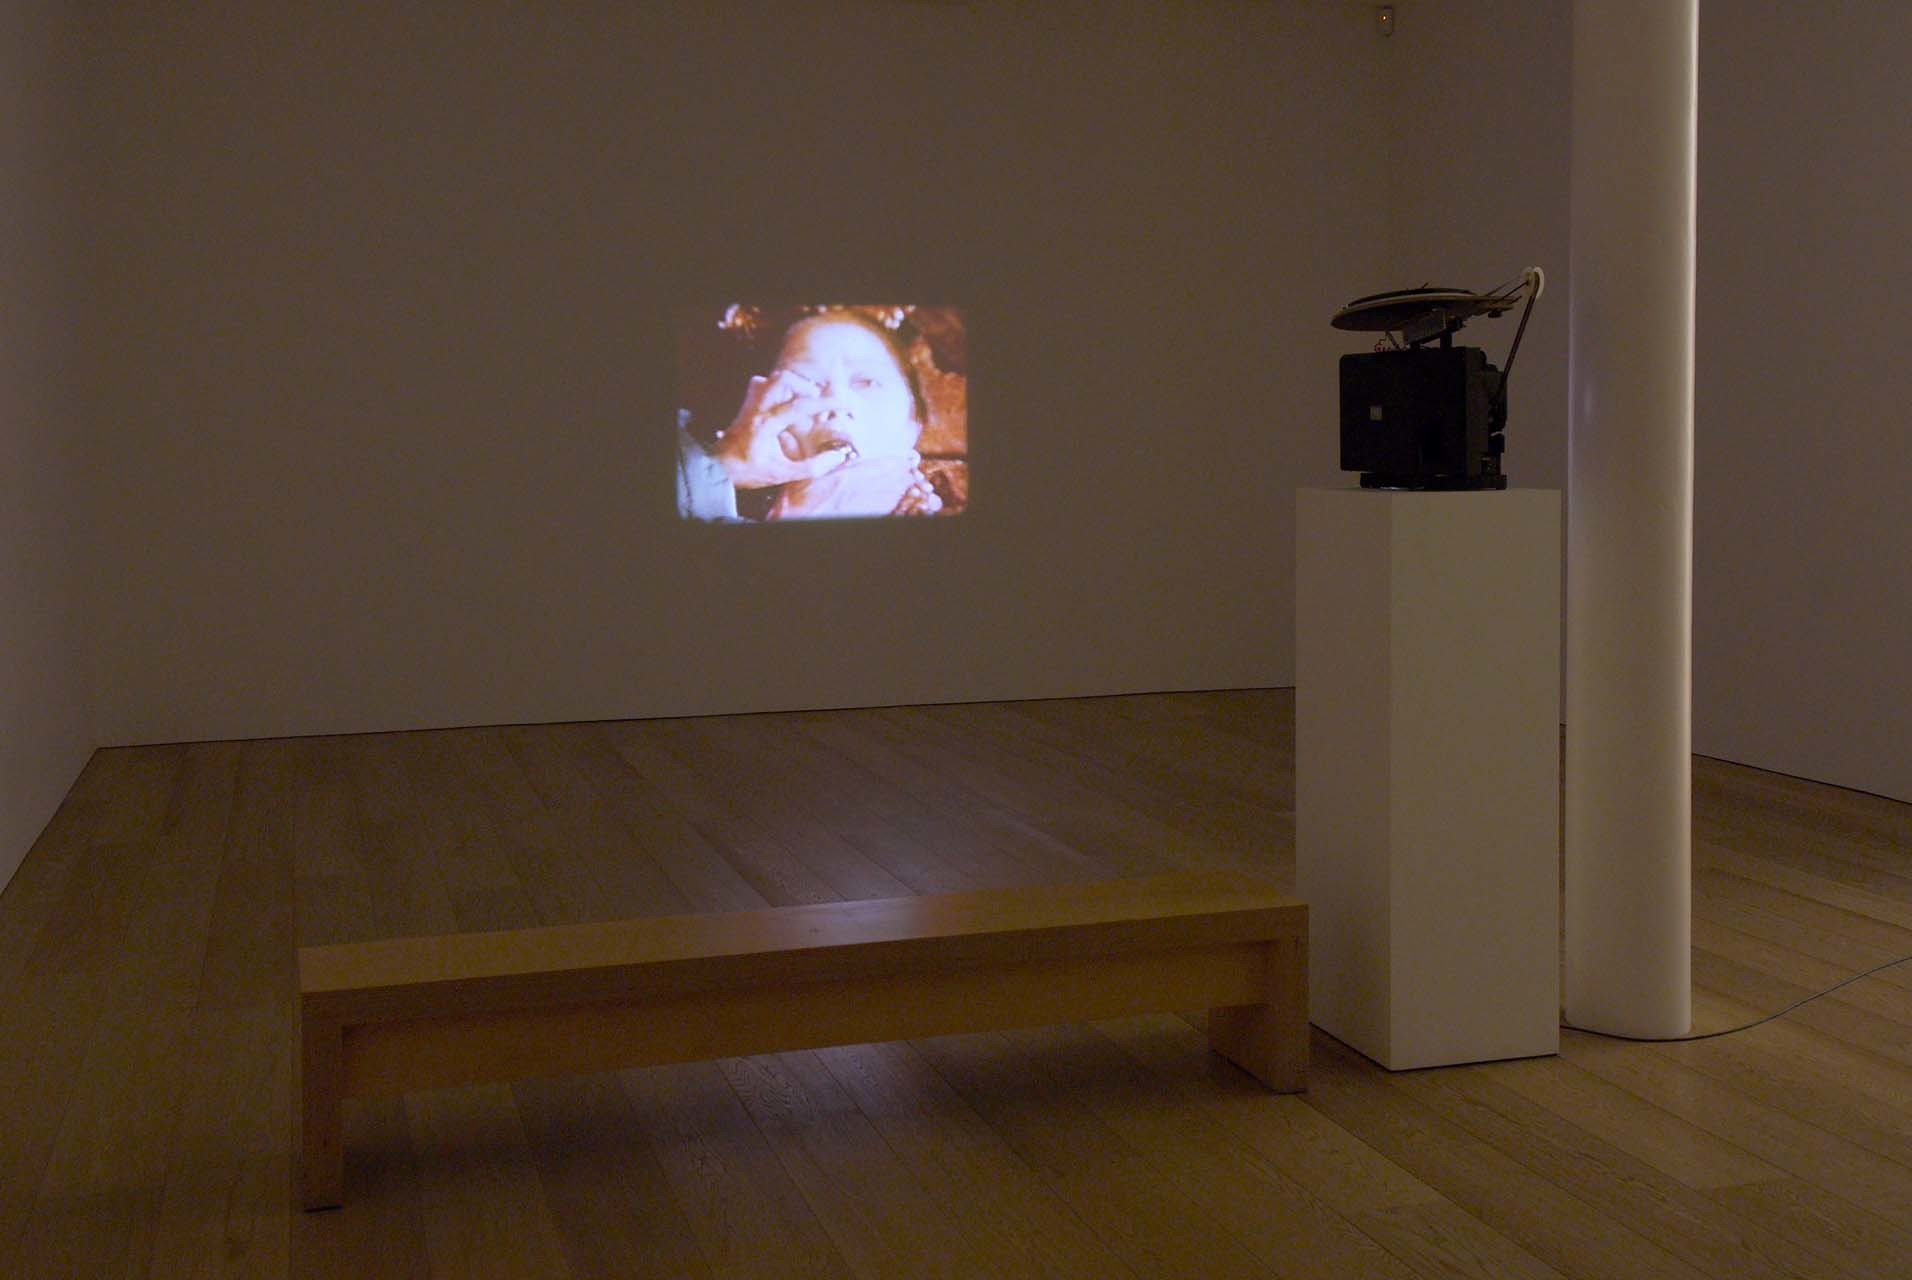 <p>Installation View, TJ Wilcox, <em>The Death and Burial of the First Emperor of China</em>, 1997</p>